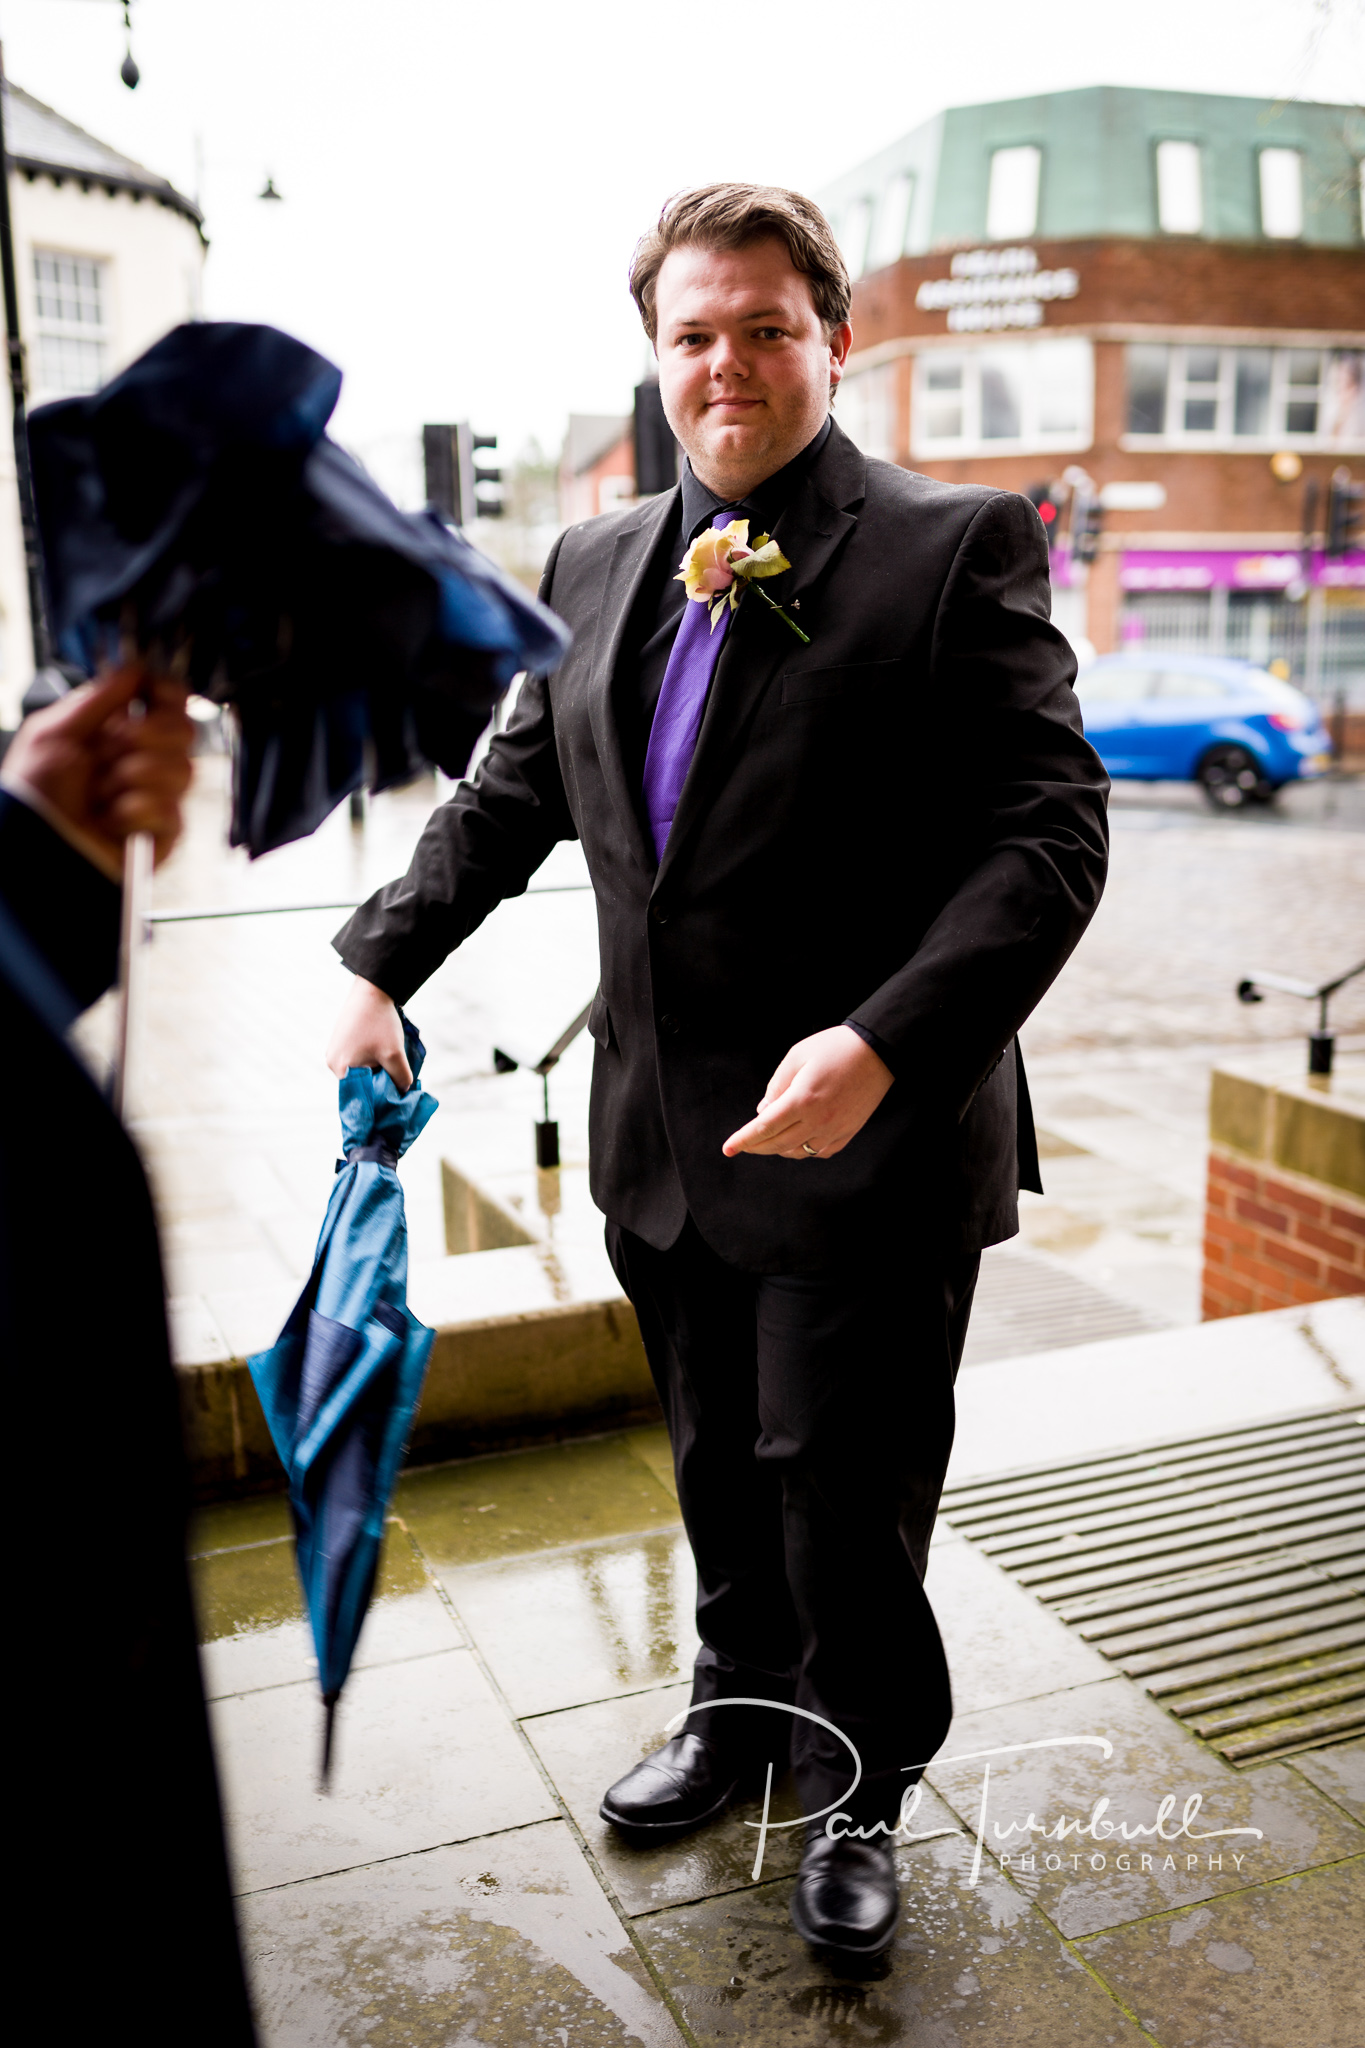 wedding-photographer-pontefract-yorkshire-laura-keanu-003.jpg